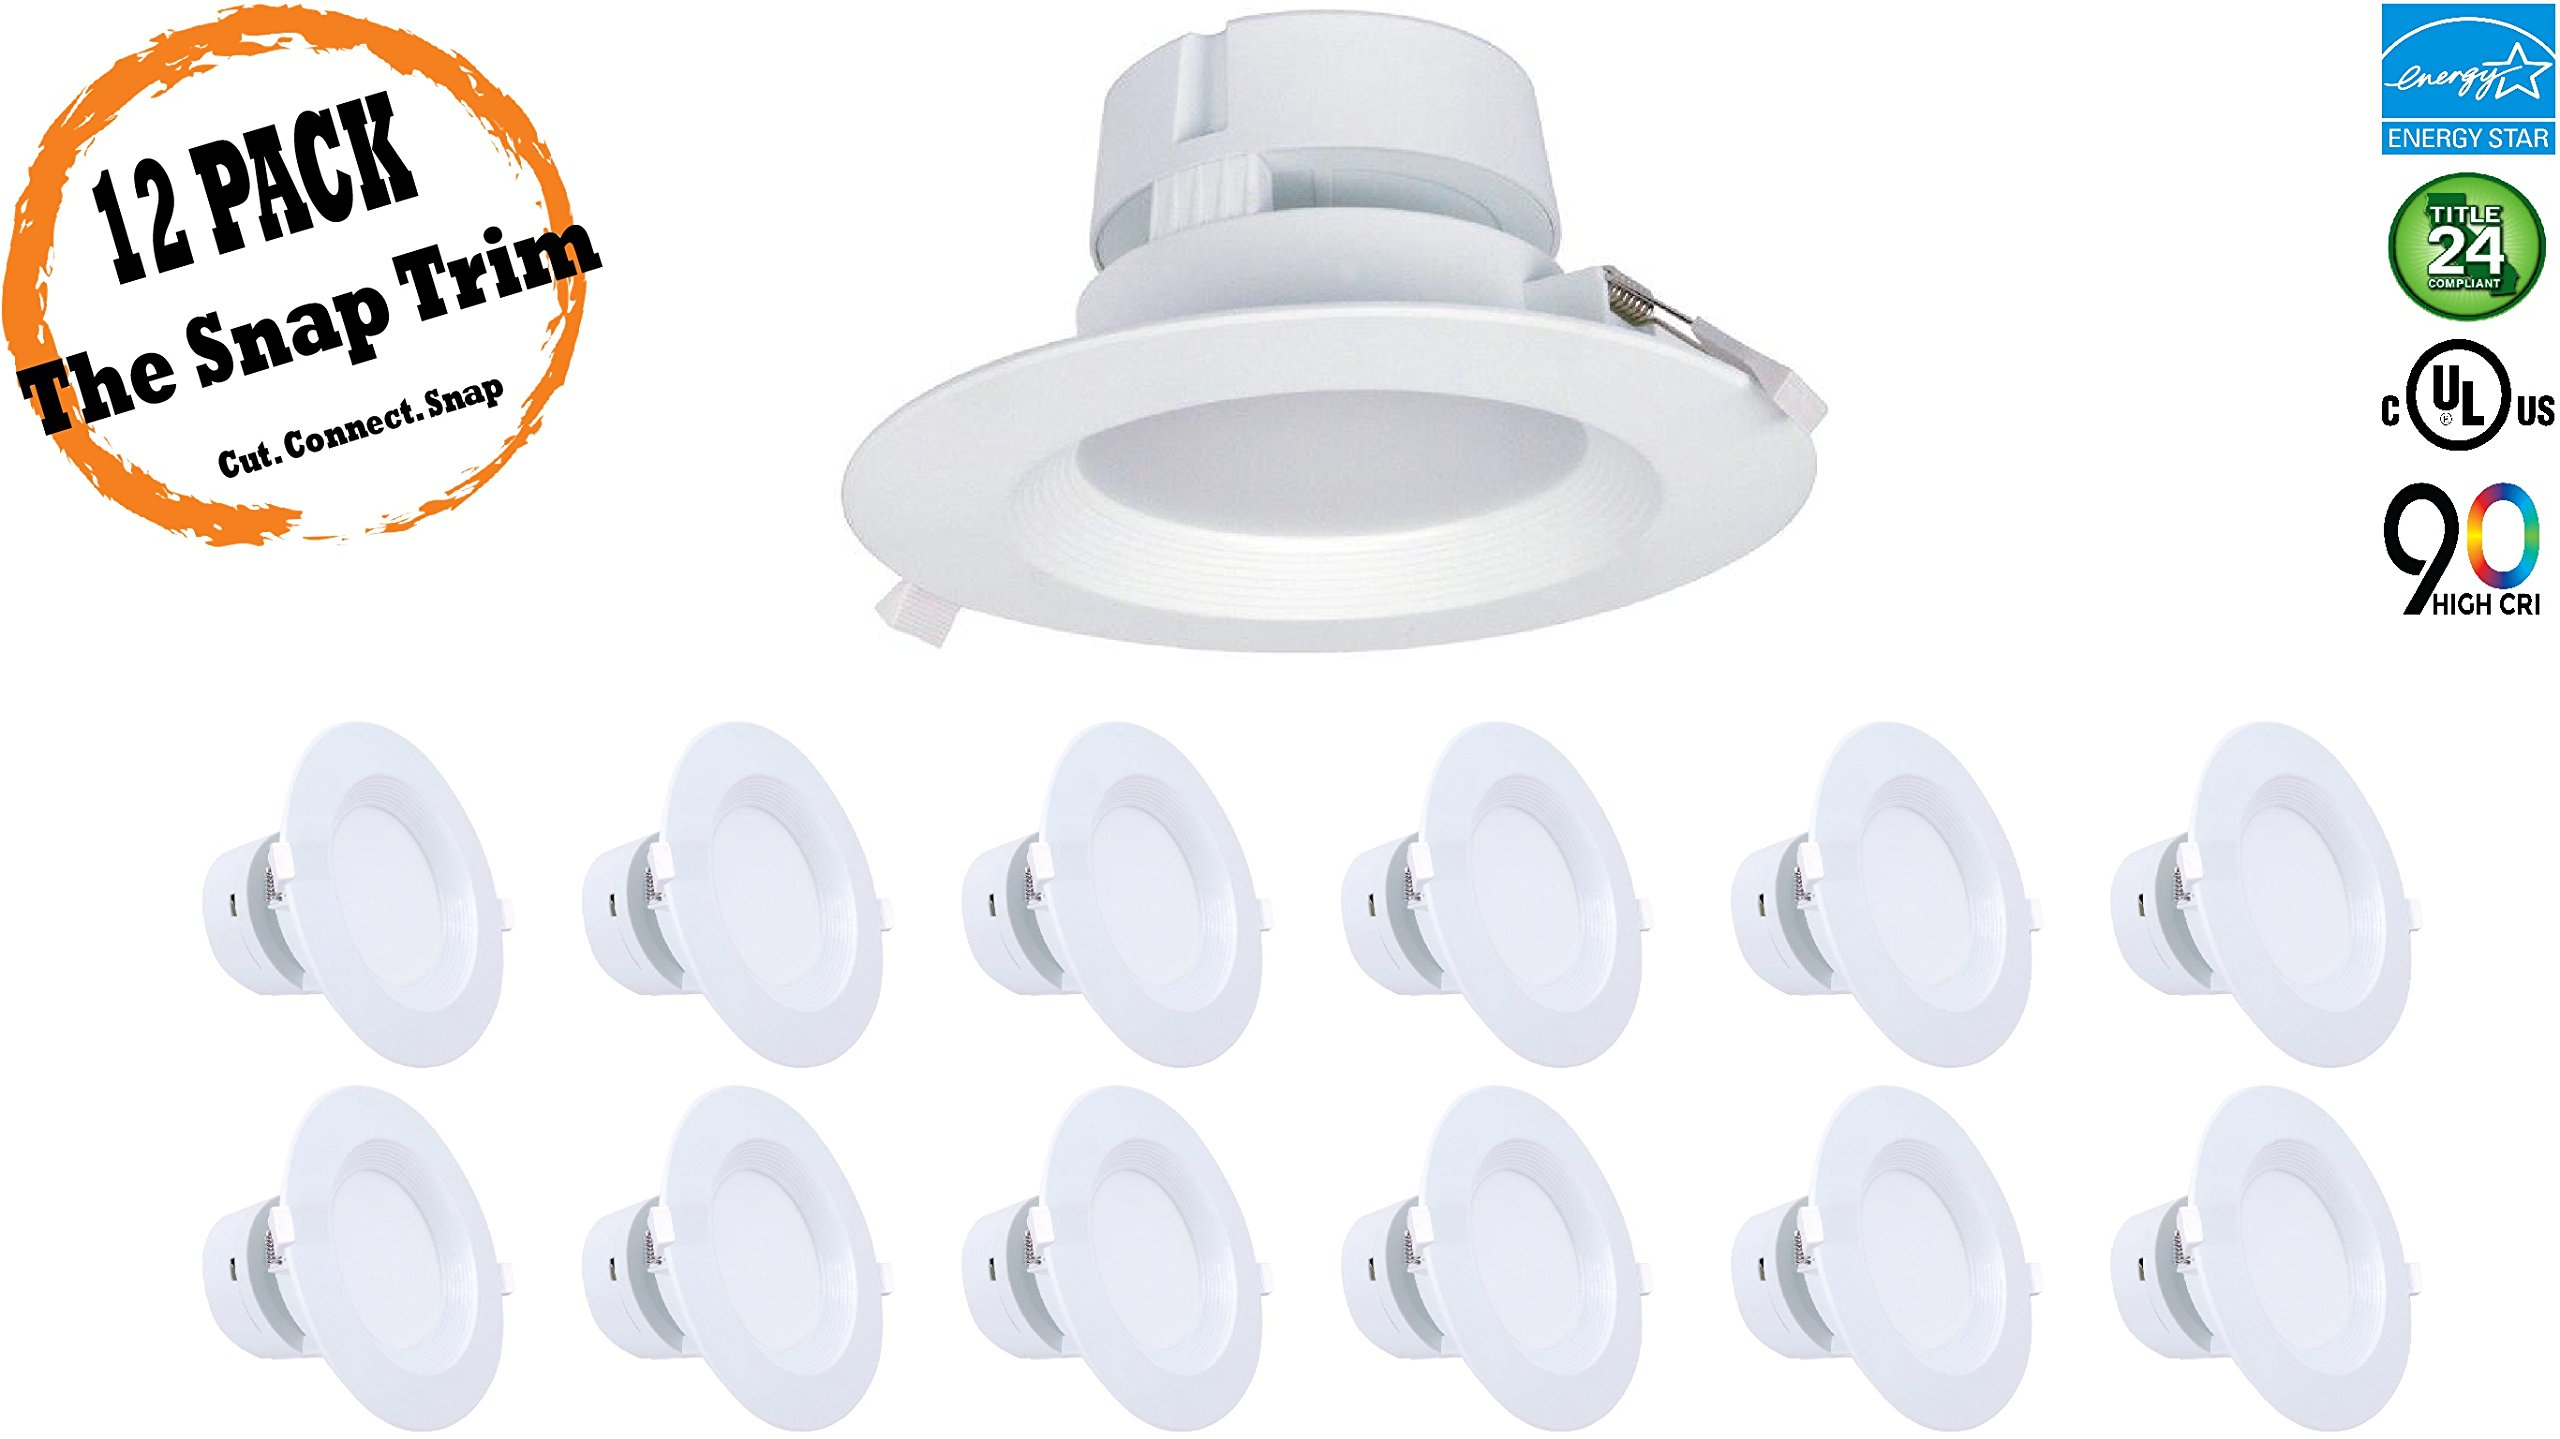 6'' Inch J-Box Canless LED Downlight 9W=(65/75W Equivalent) 40,000 Life Hours; Dimmable to 5%; Wet Location Rated; 700 Lumens; 120V; CRI>90; 5 Year Warranty; Cool White 4000K- (12 PACK)